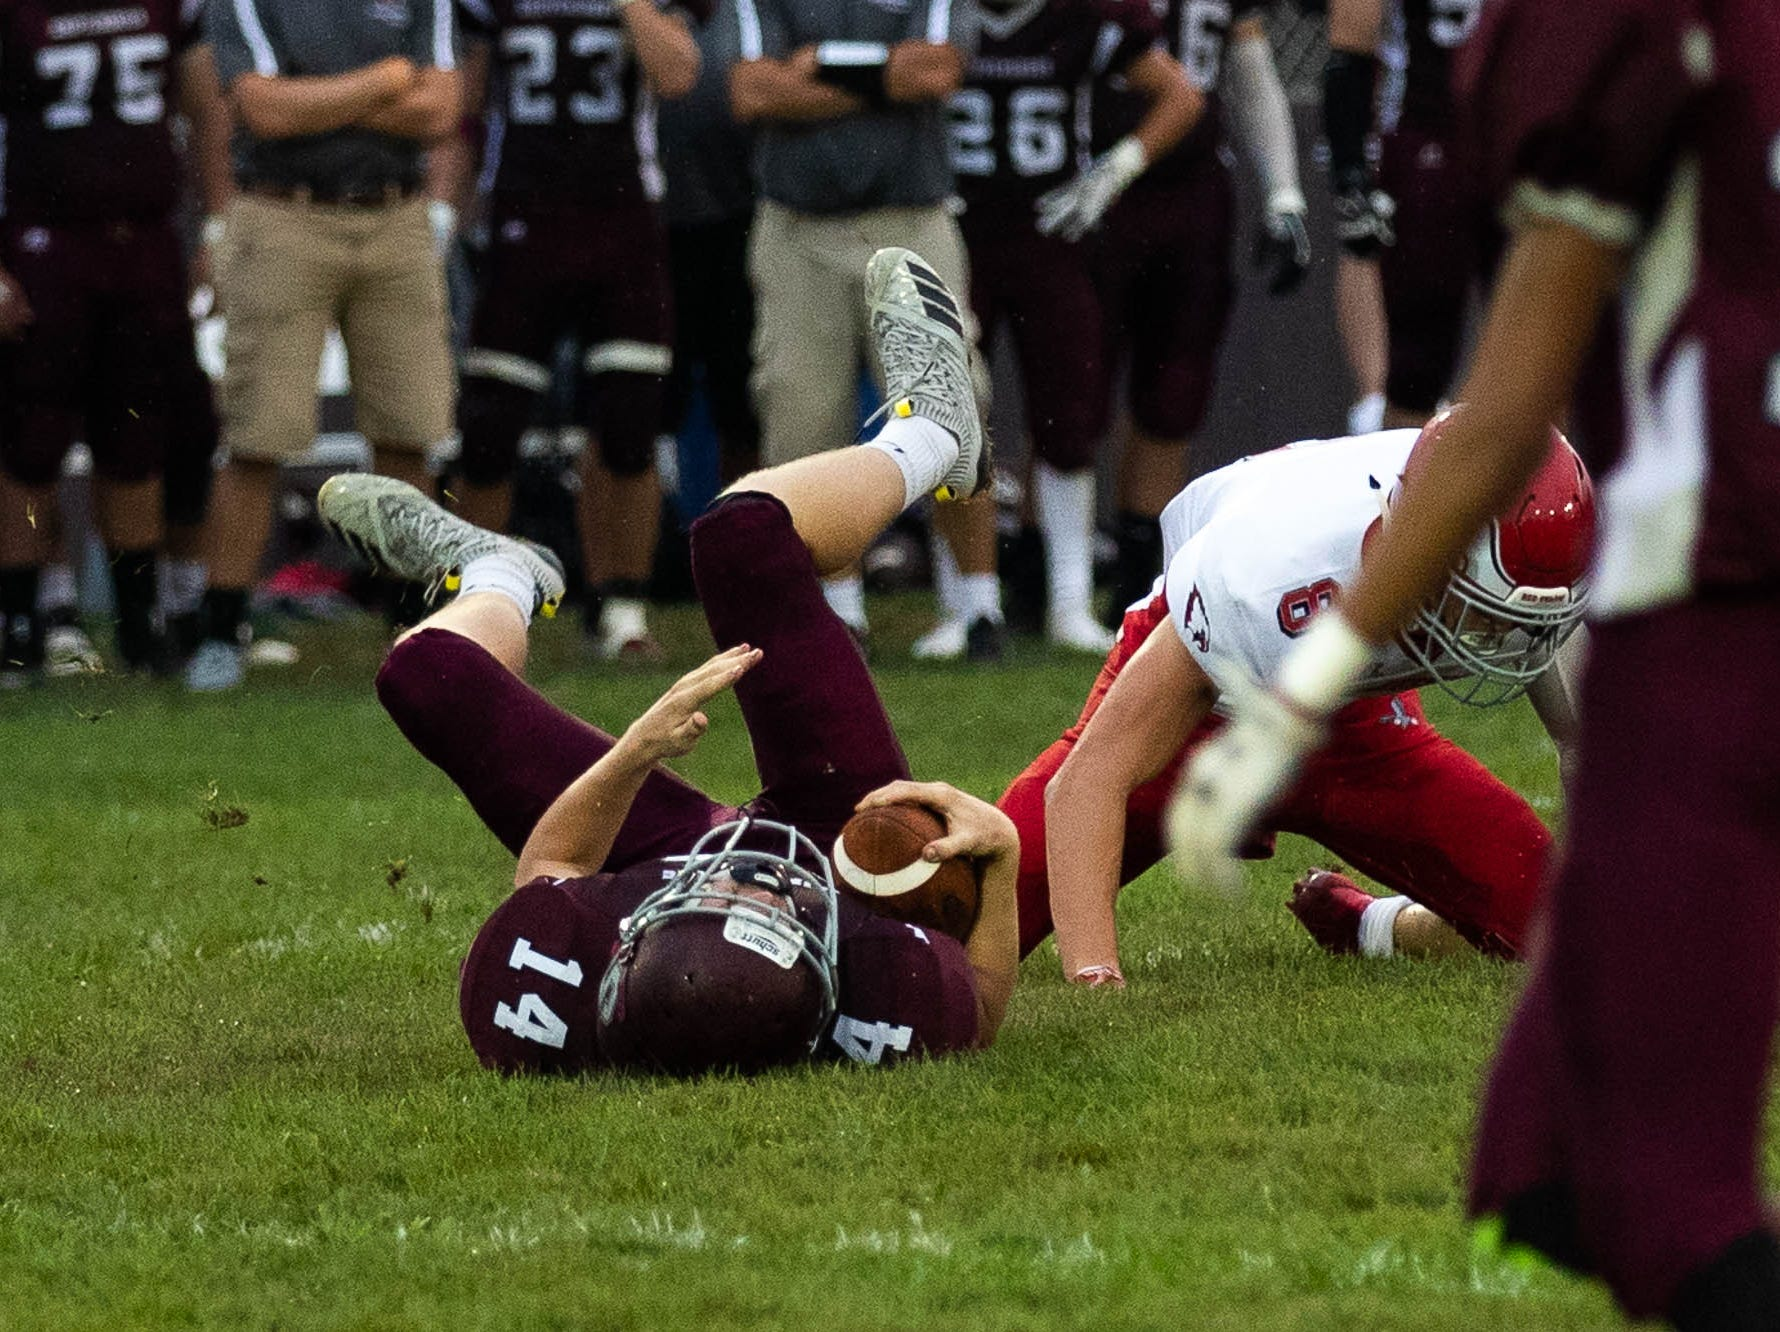 Shippensburg's Andrew Hoch (14) rolls through the field after being tackled by Bermudian Springs' Chase McMillan (8) during a football game between Shippensburg and Bermudian Springs, Friday, Sept. 7, 2018, at Shippensburg High School.